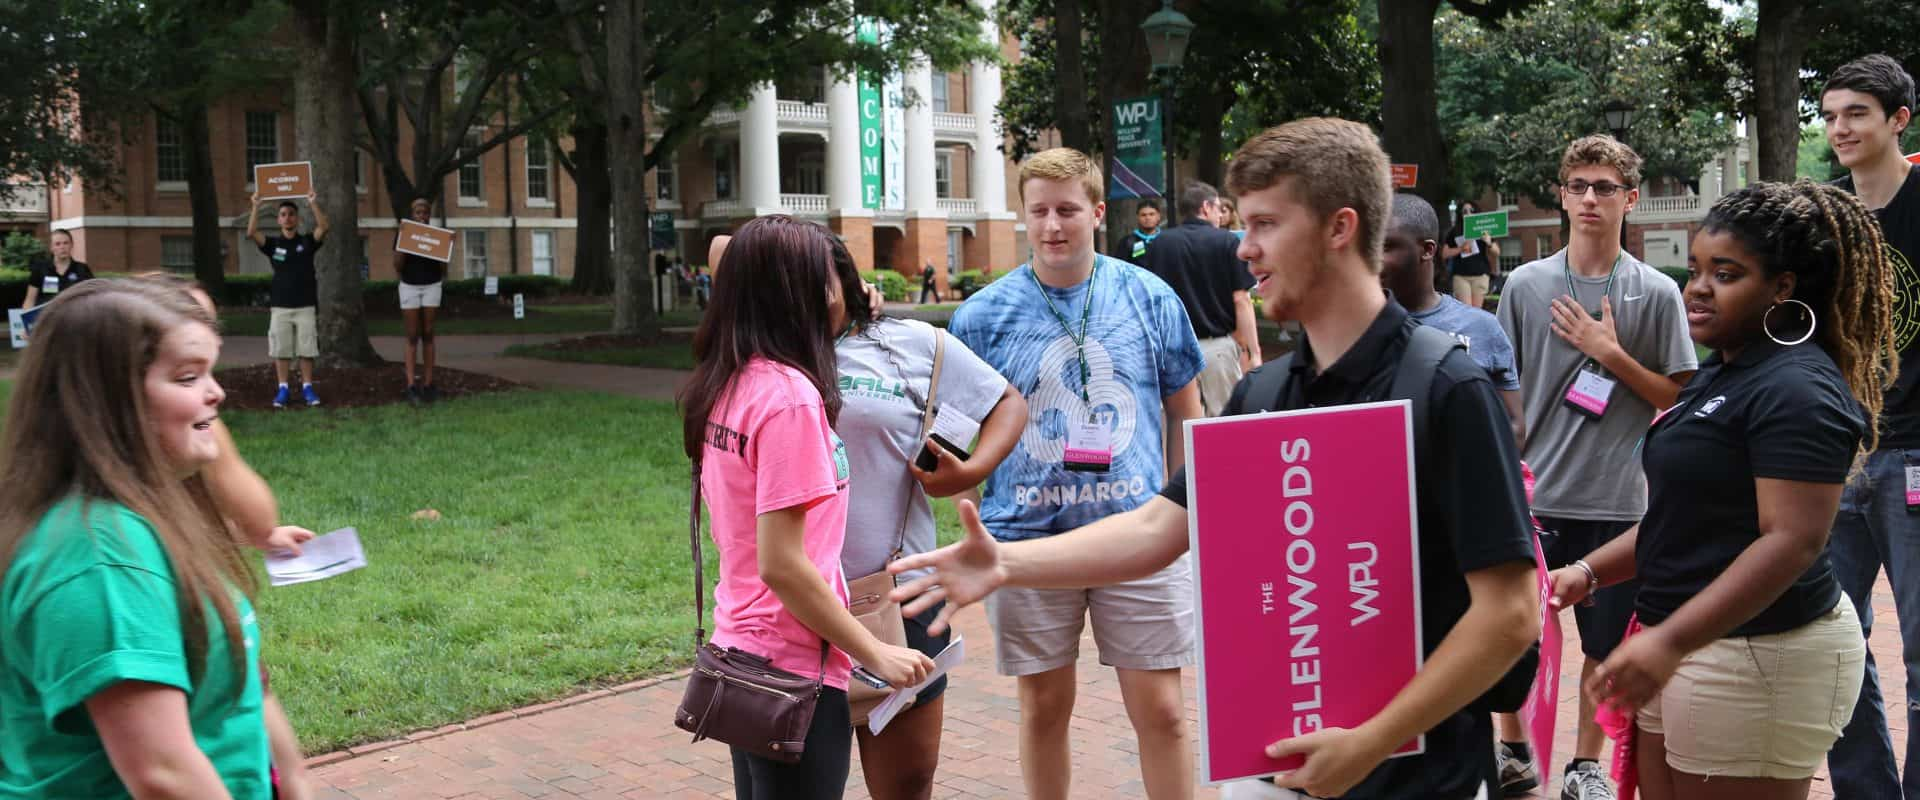 WPU OLs greet new students.